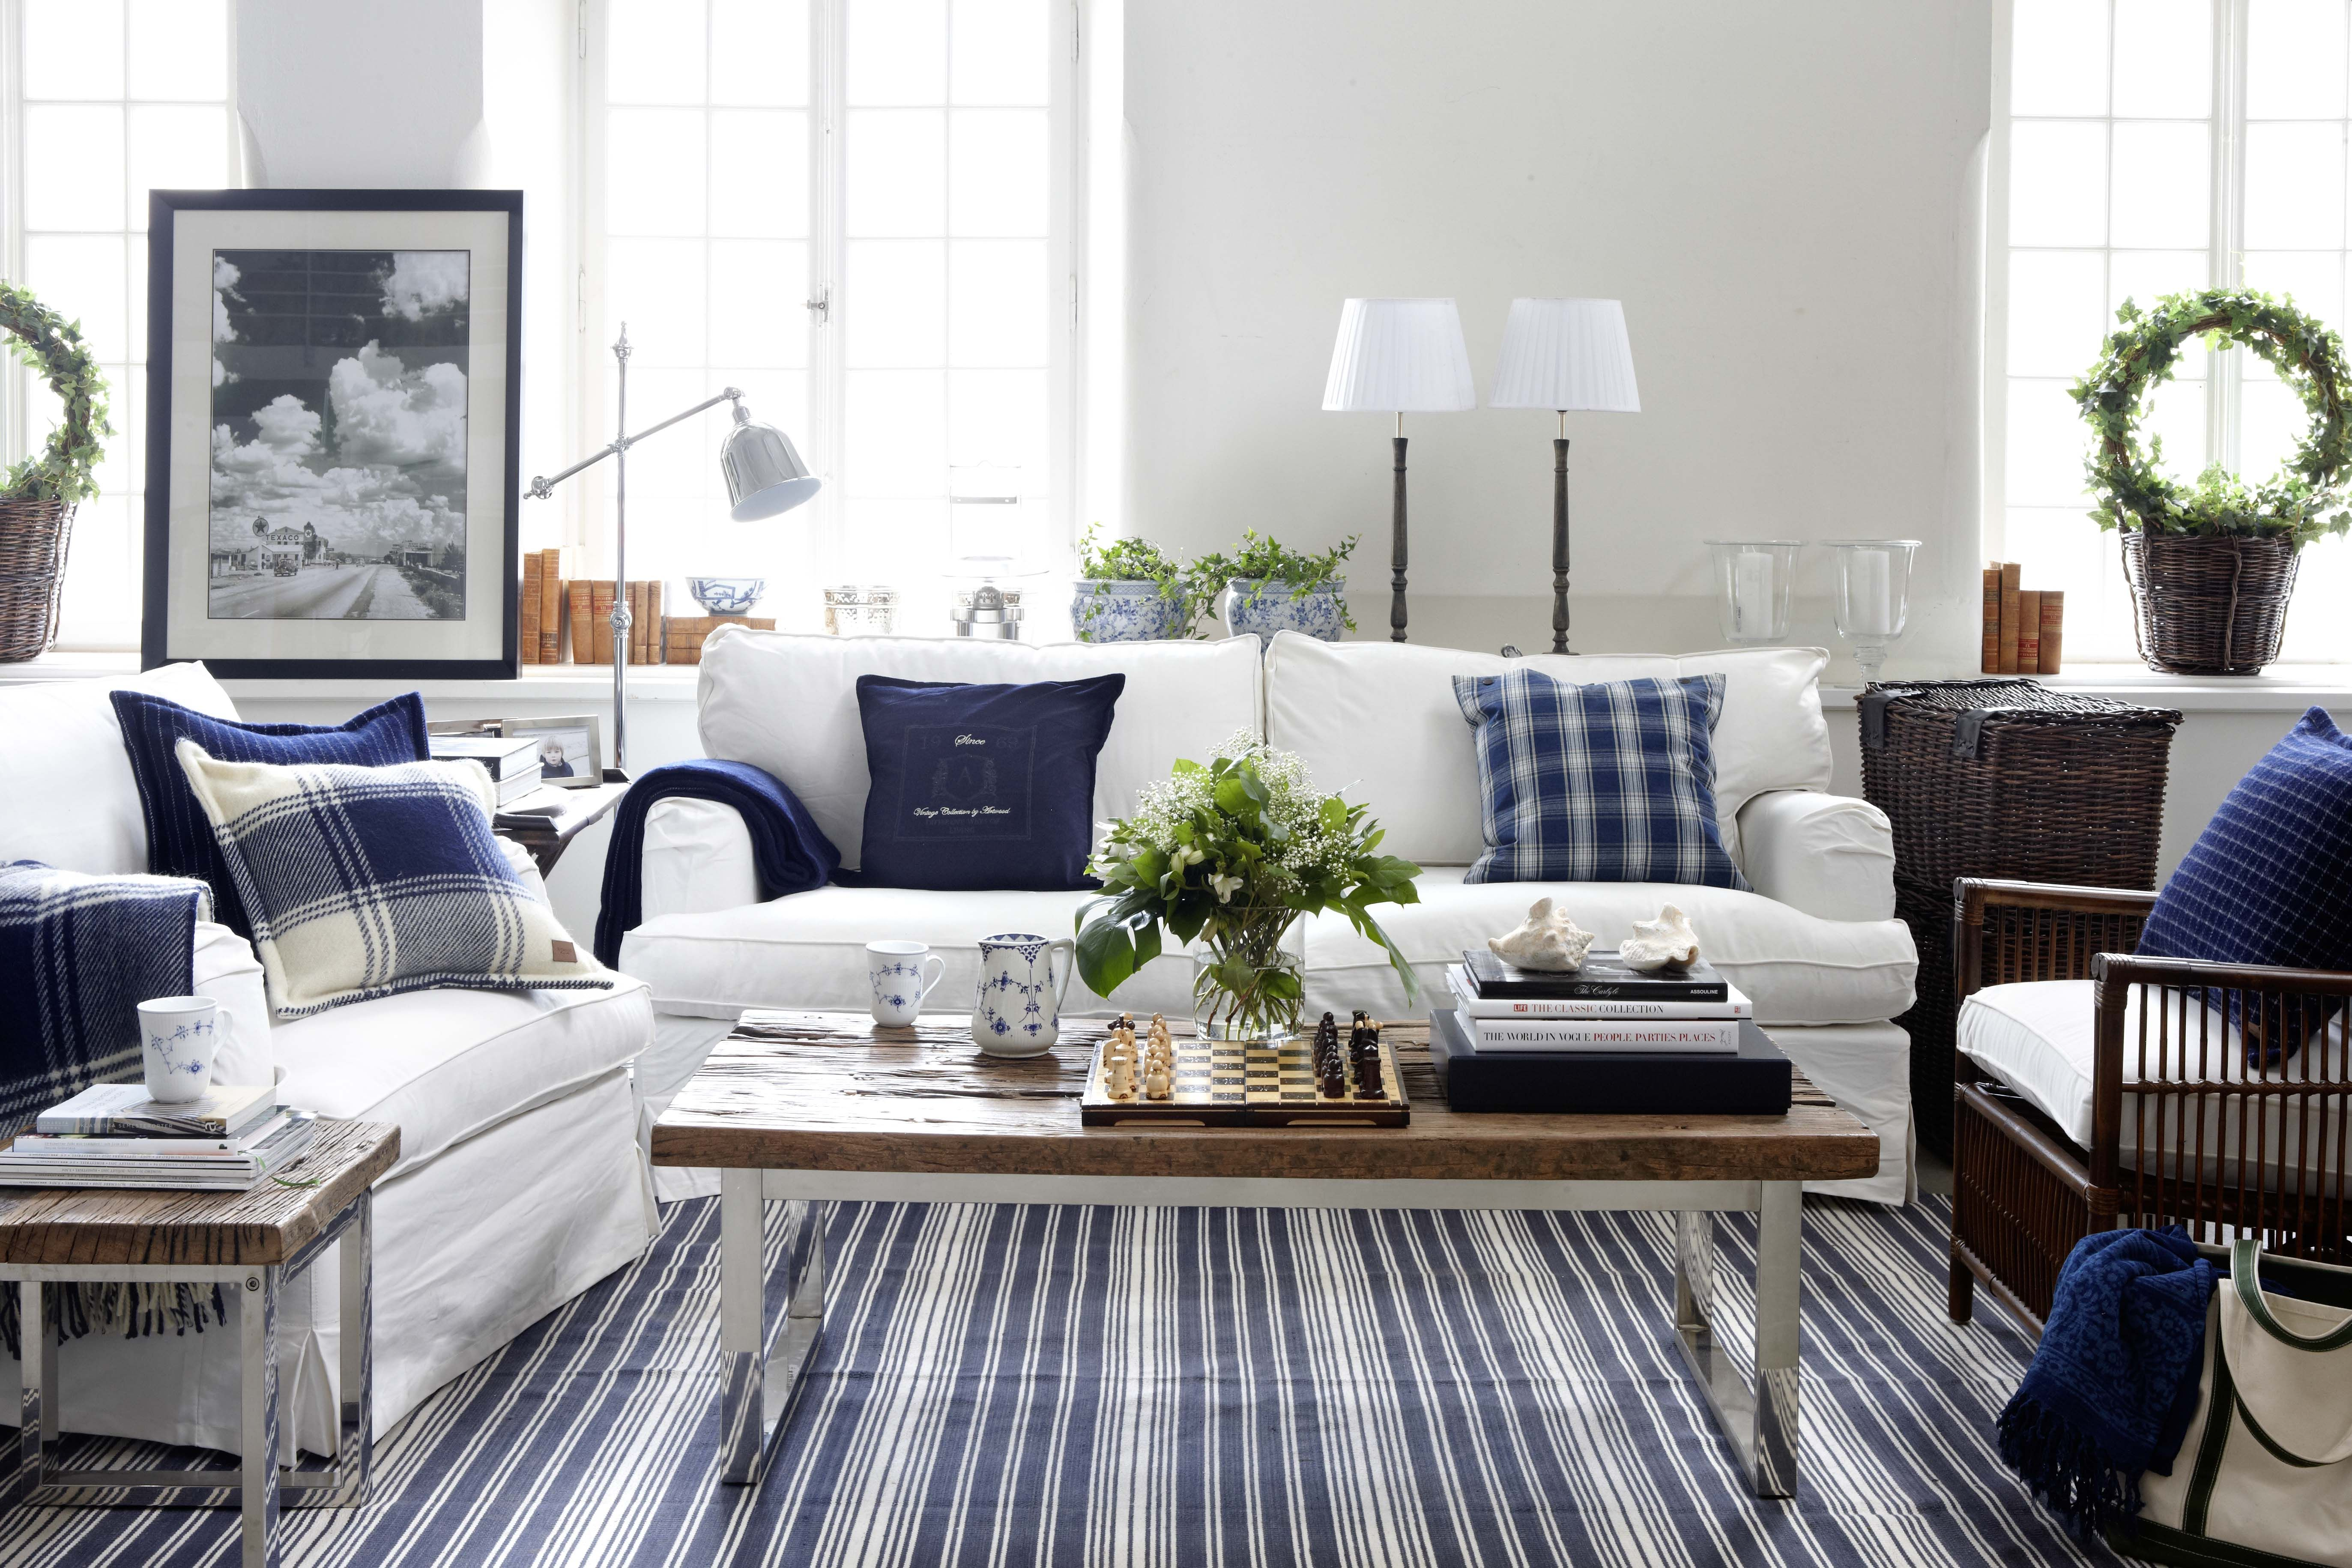 Loving The Nautical Style, Cape Cod Do-over Soon? Look No